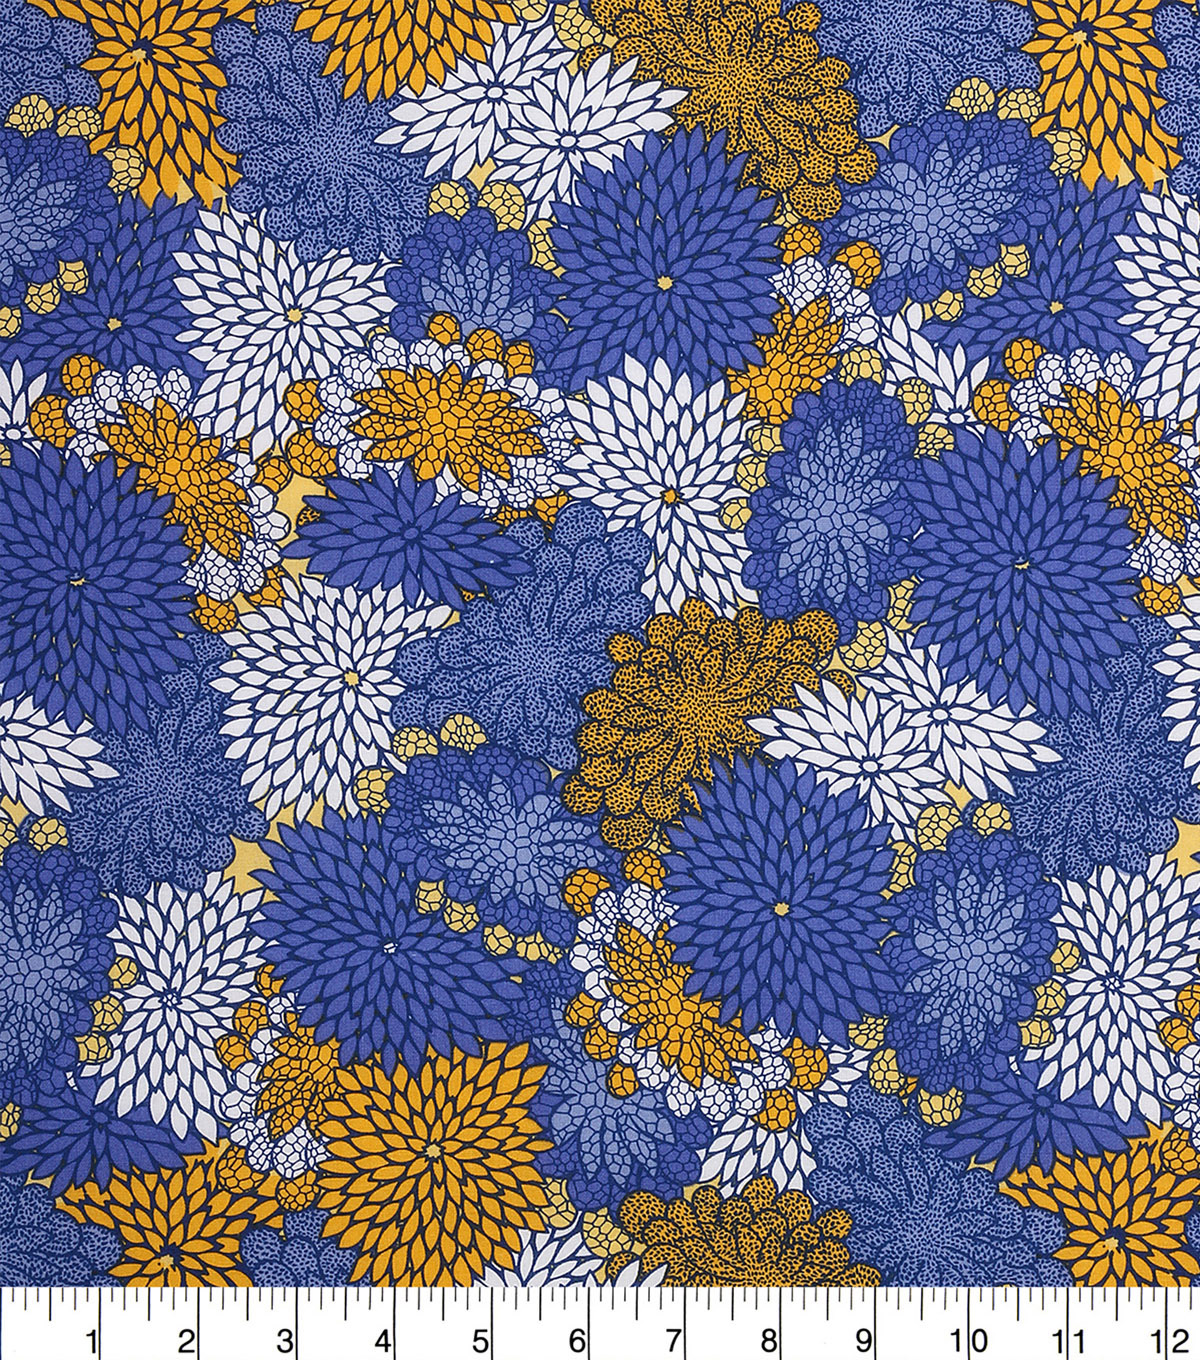 Keepsake Calico Cotton Fabric 43\u0022-Yellow Blue Packed Floral